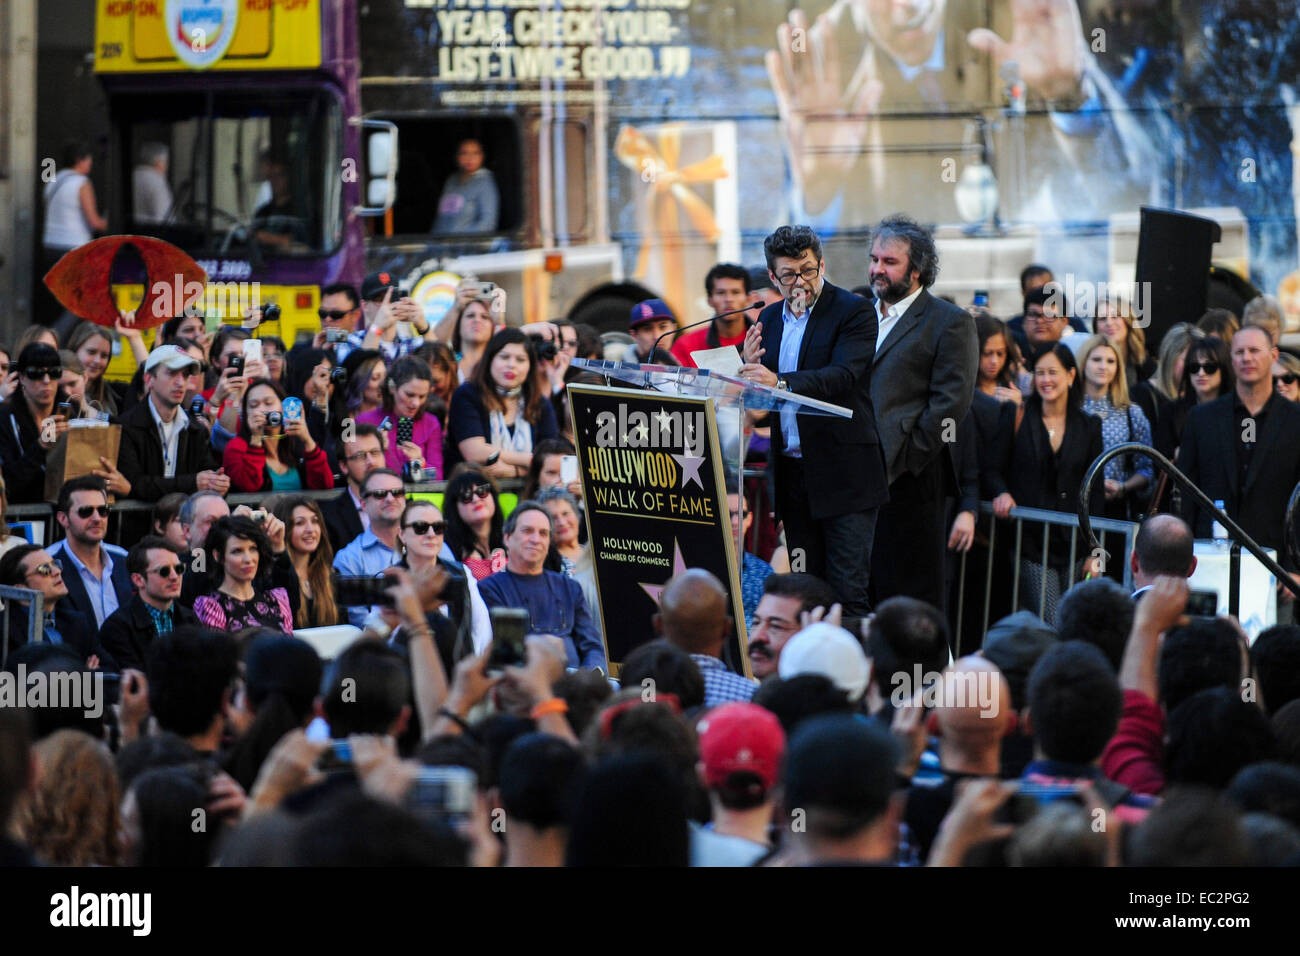 Los Angeles, USA. 8th Dec, 2014. New Zealand director Peter Jackson (R) and British actor Andy Serkis (L) attend - Stock Image